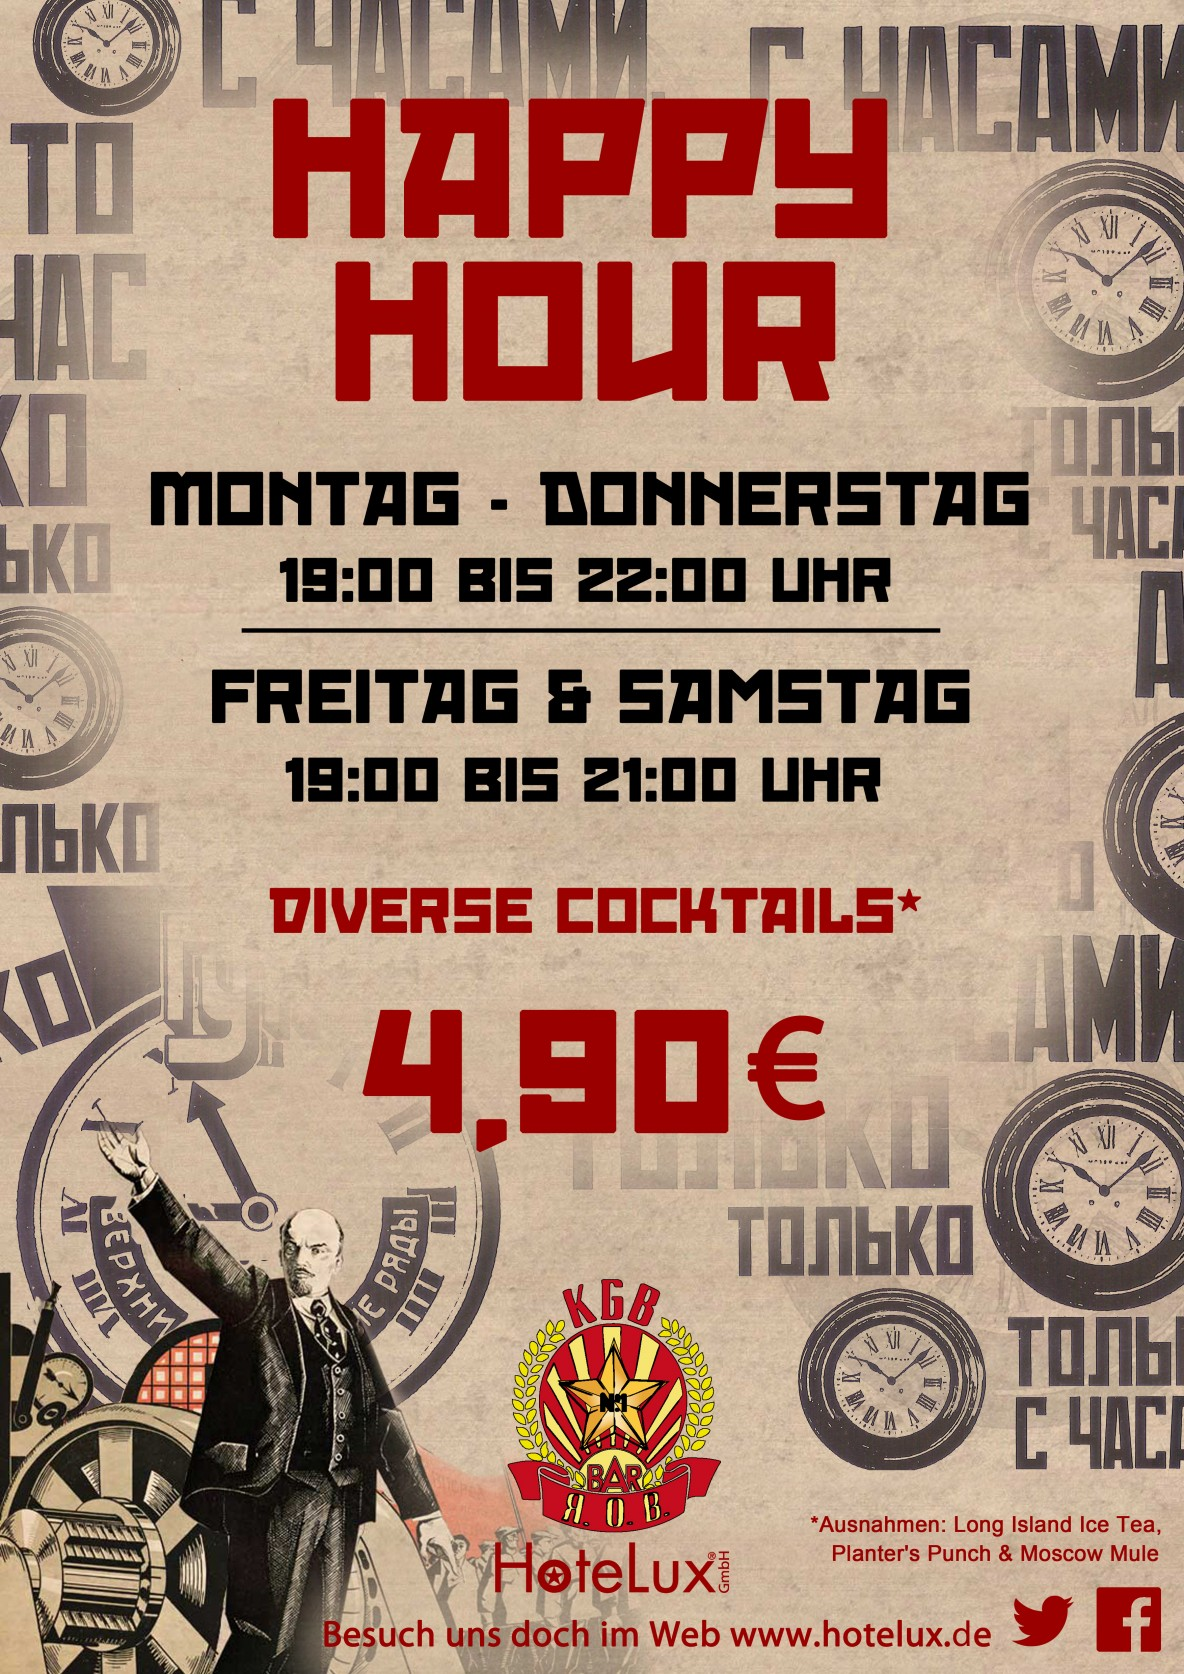 HappyHourPlakat